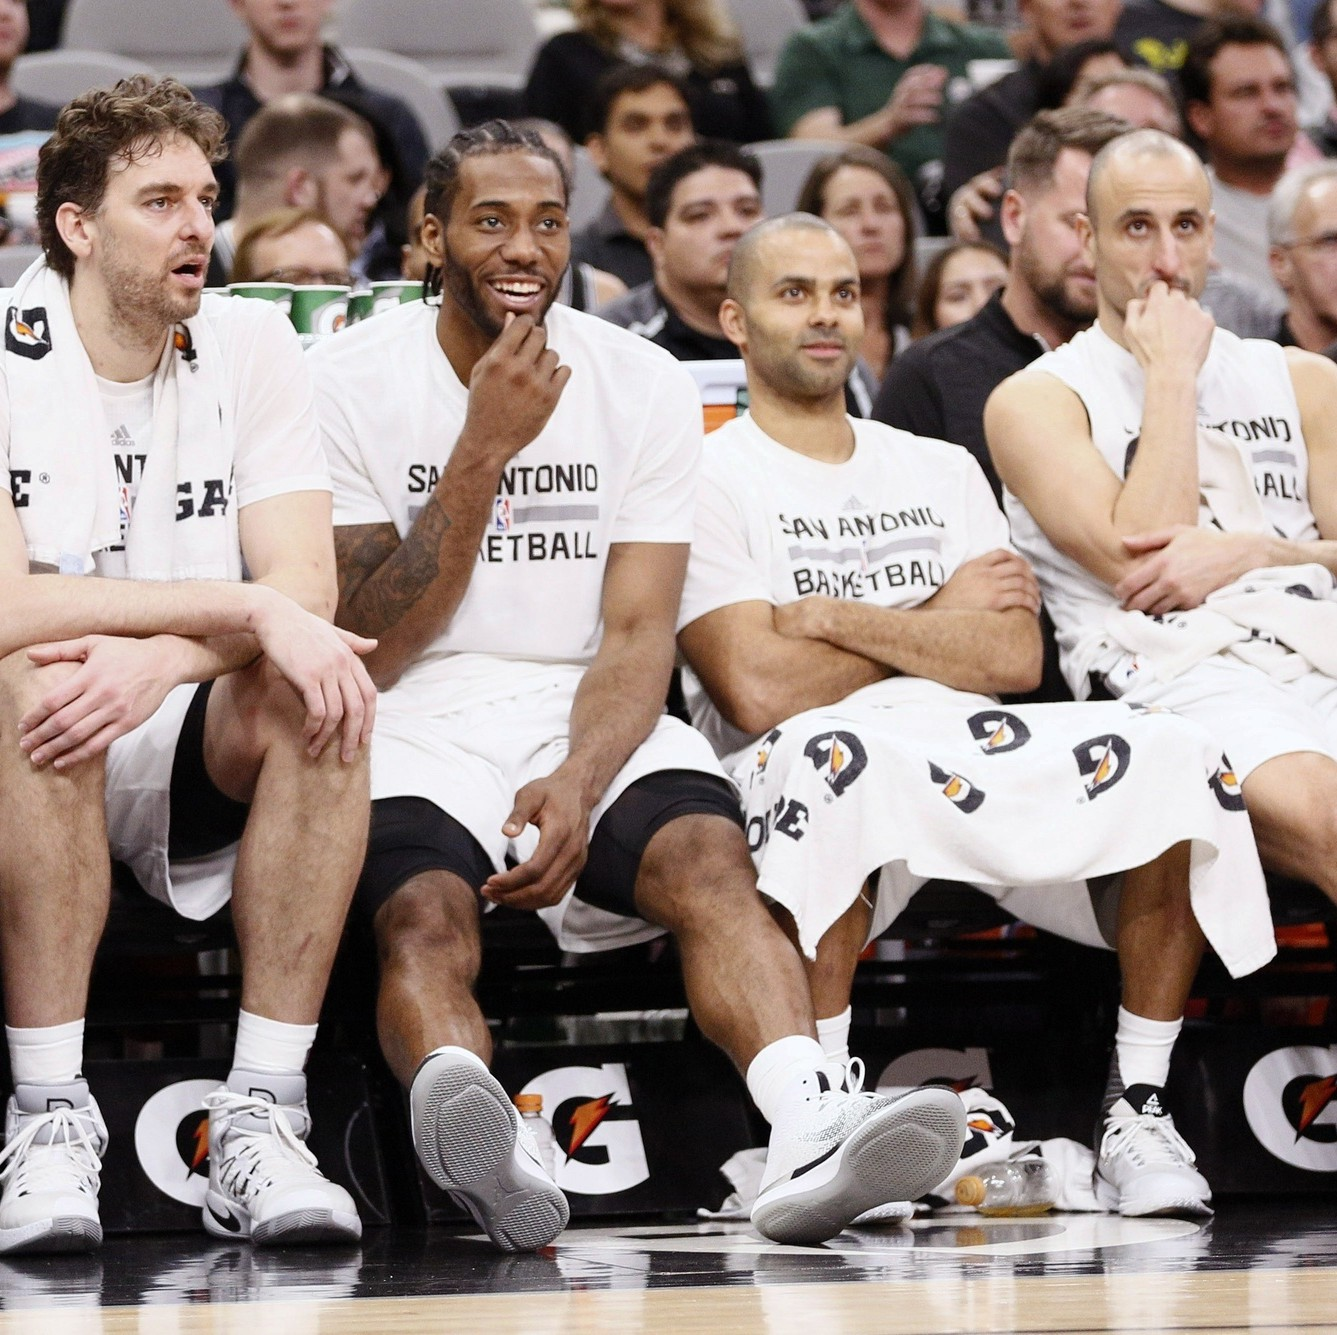 The-spurs-unstoppable-dynasty-the-nba-wraparound-1484935221.jpg?crop=0.66796875xw:1xh;0